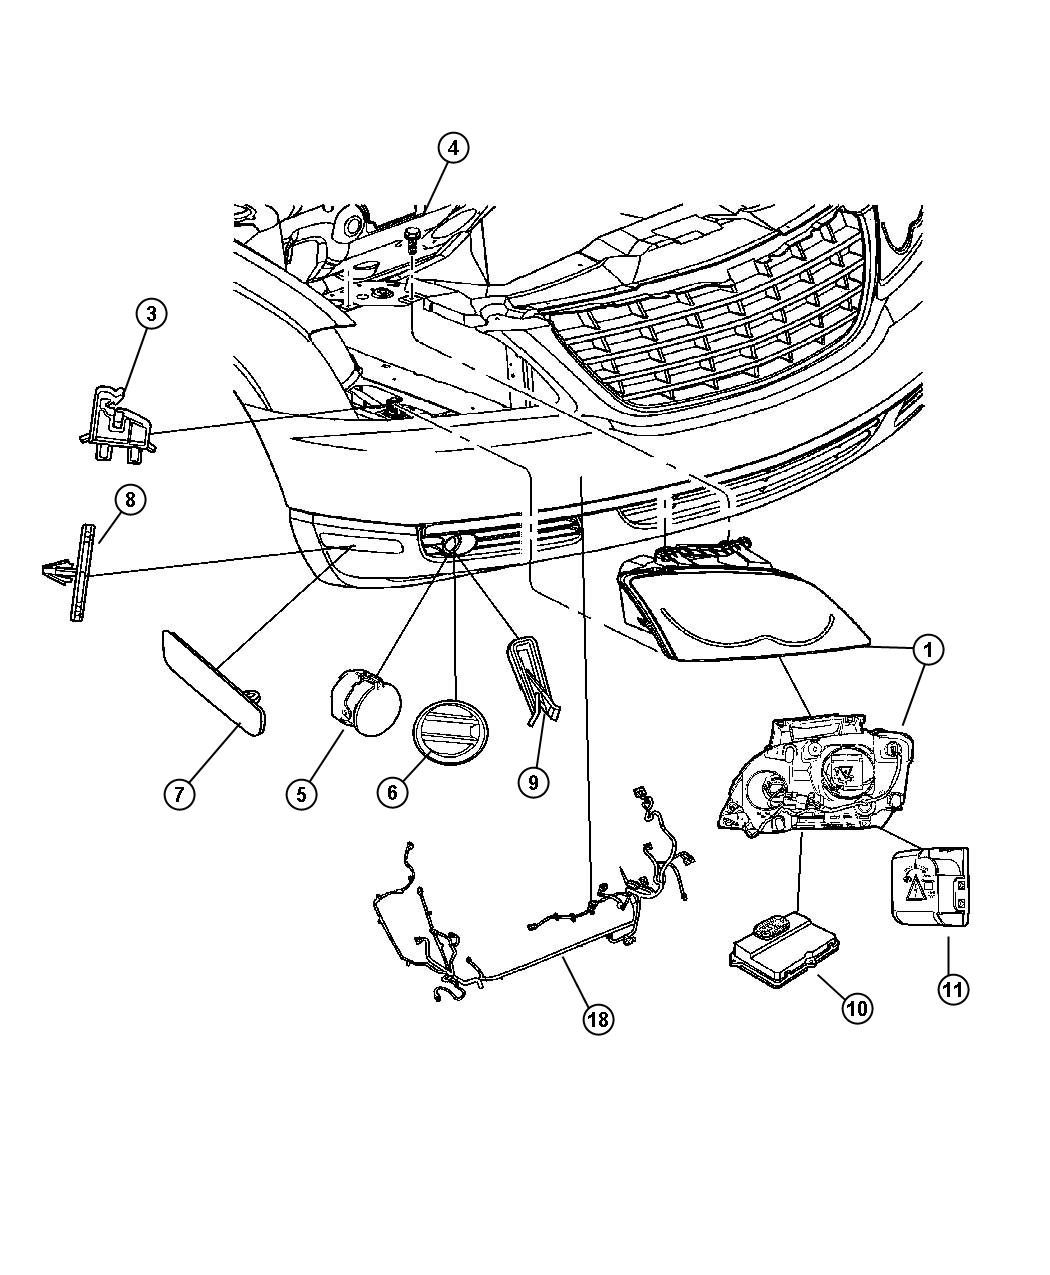 Discussion T27236 ds543026 as well Chrysler 2 5 4cyl Engine Diagram furthermore Chrysler 2 4 Engine Diagram Voyger additionally 06 International 4300 Wiring Diagram further Honda Accord Fuse Box Diagram 374841. on 06 pt cruiser fuse box